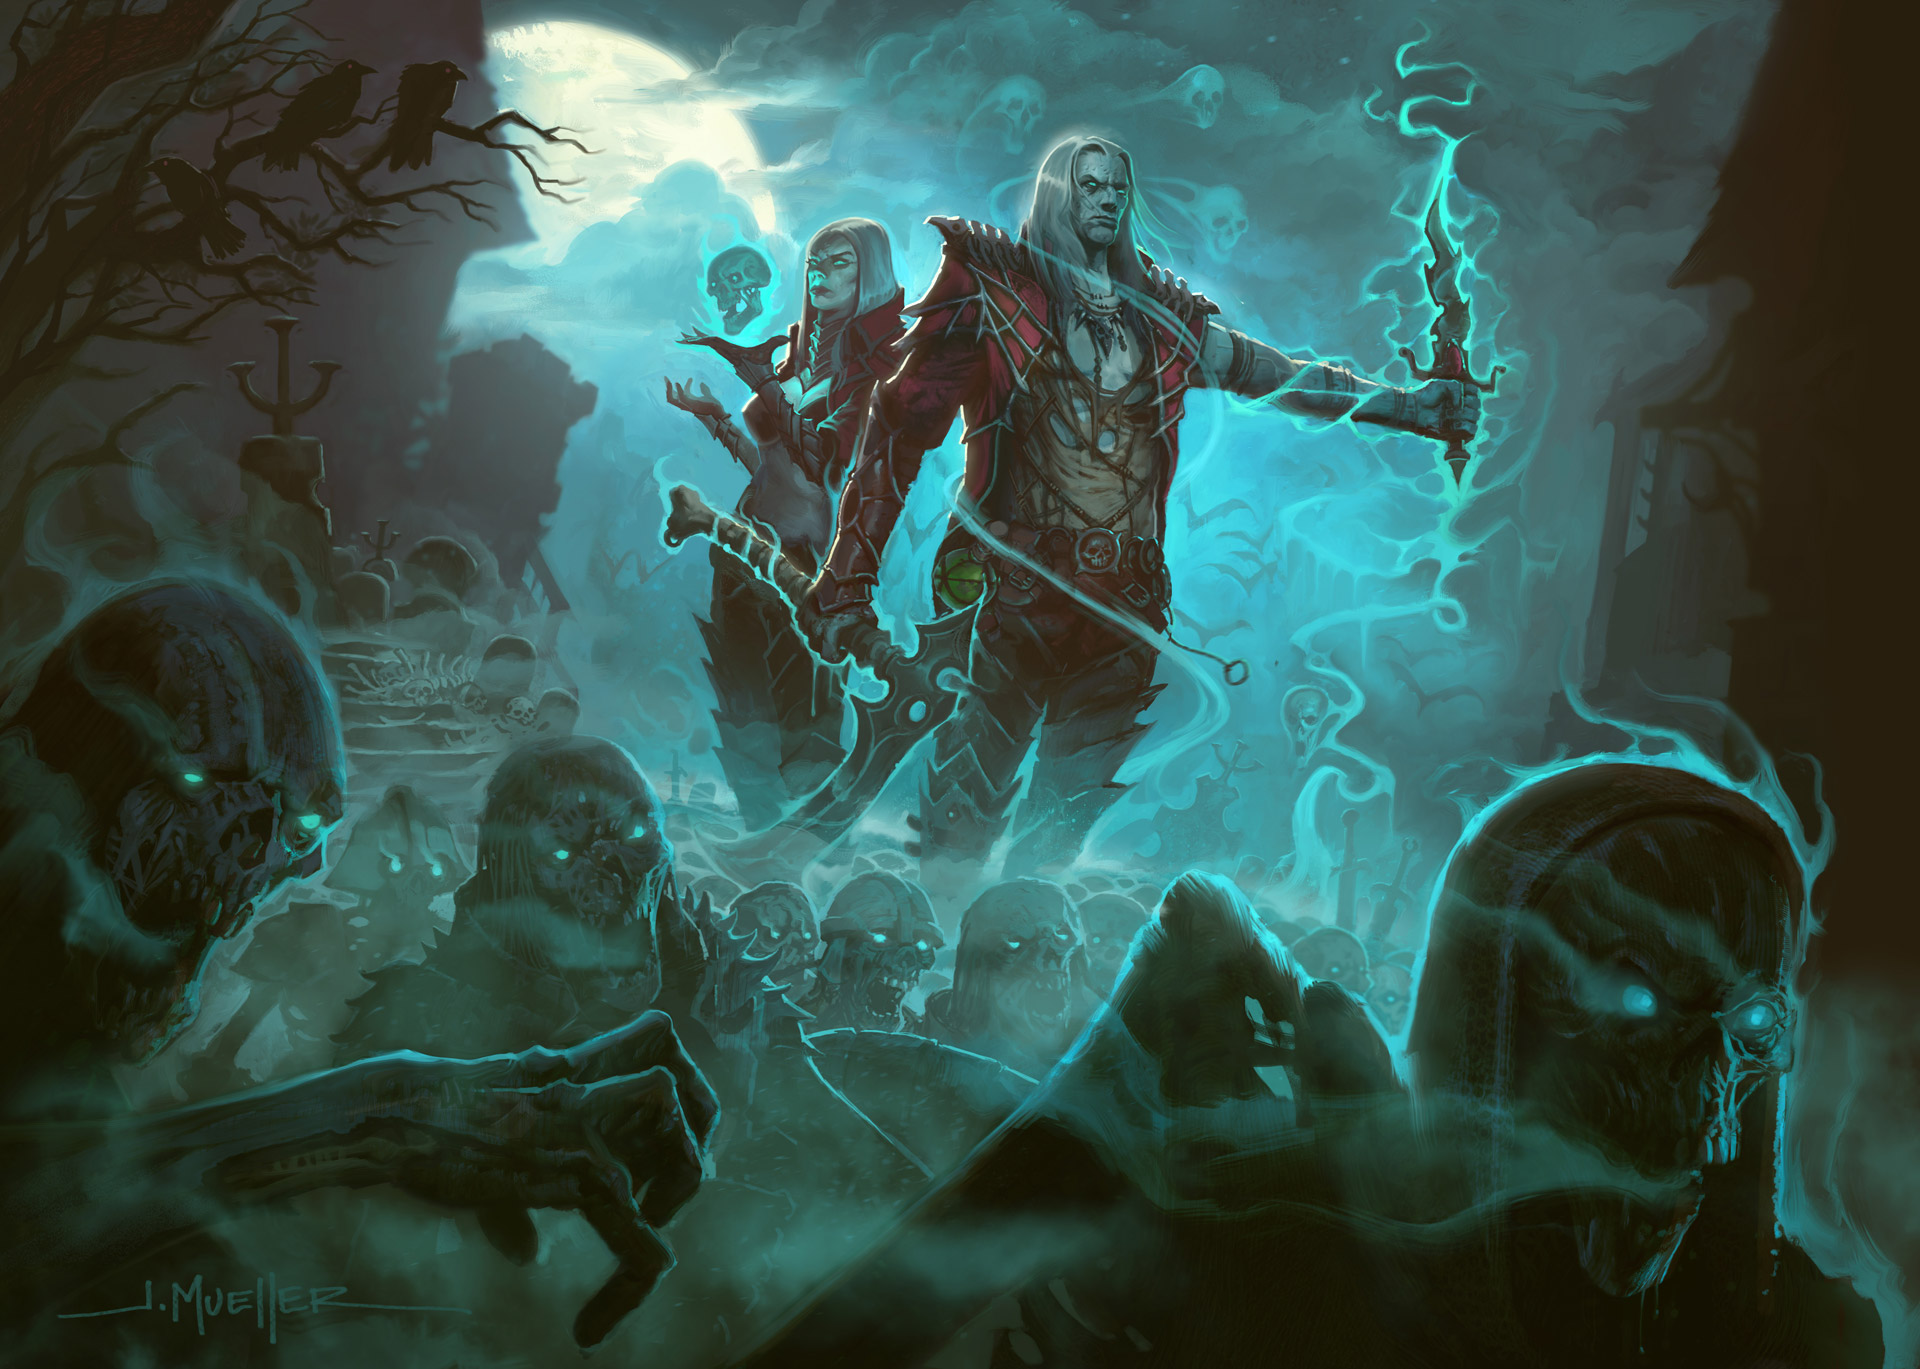 Art work featuring the feminine and male Necromancers in Diablo 3